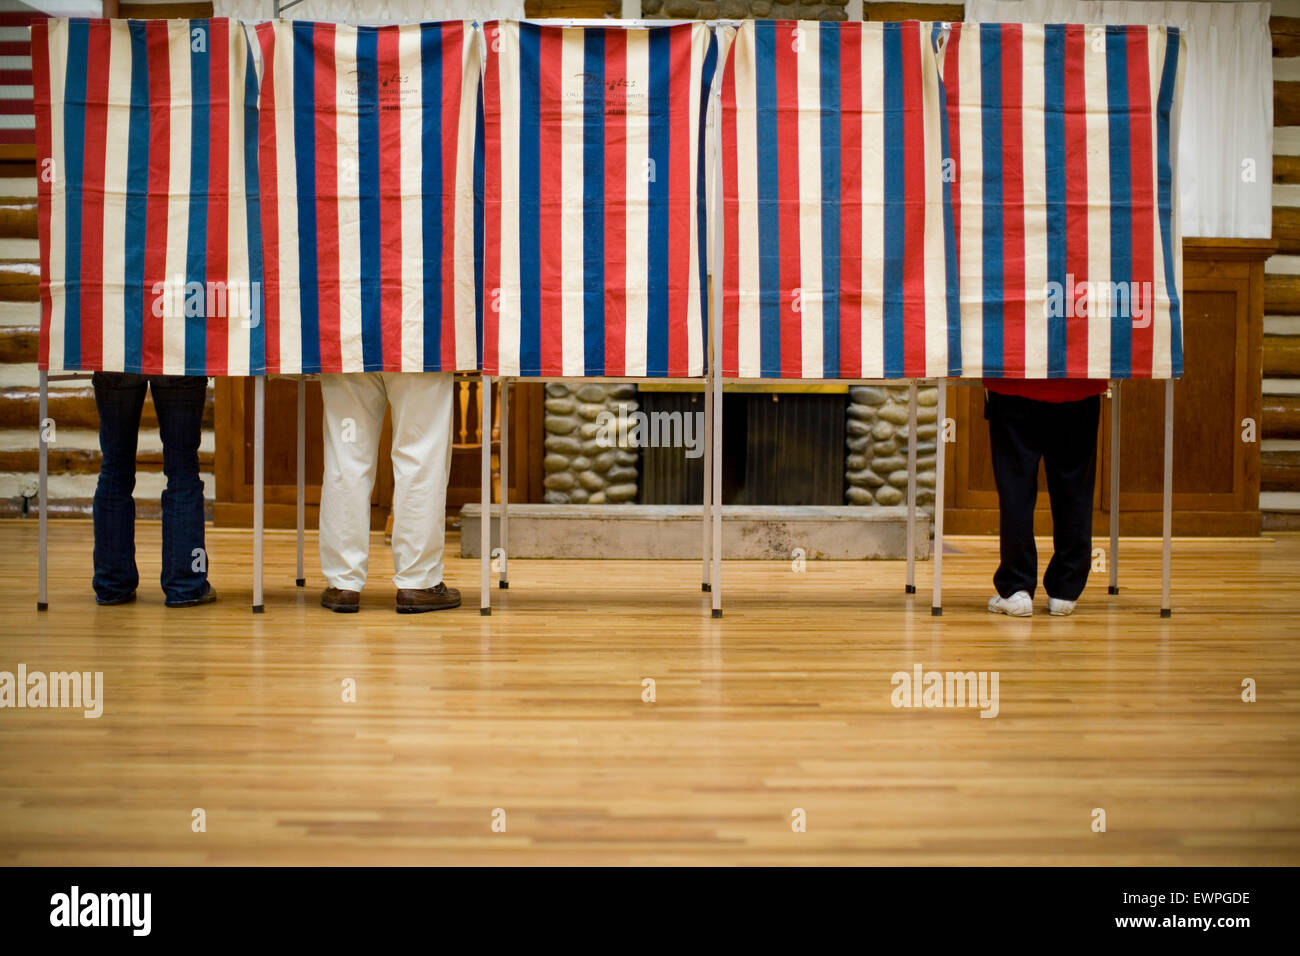 Local citizens casting their vote on Election Day - Stock Image